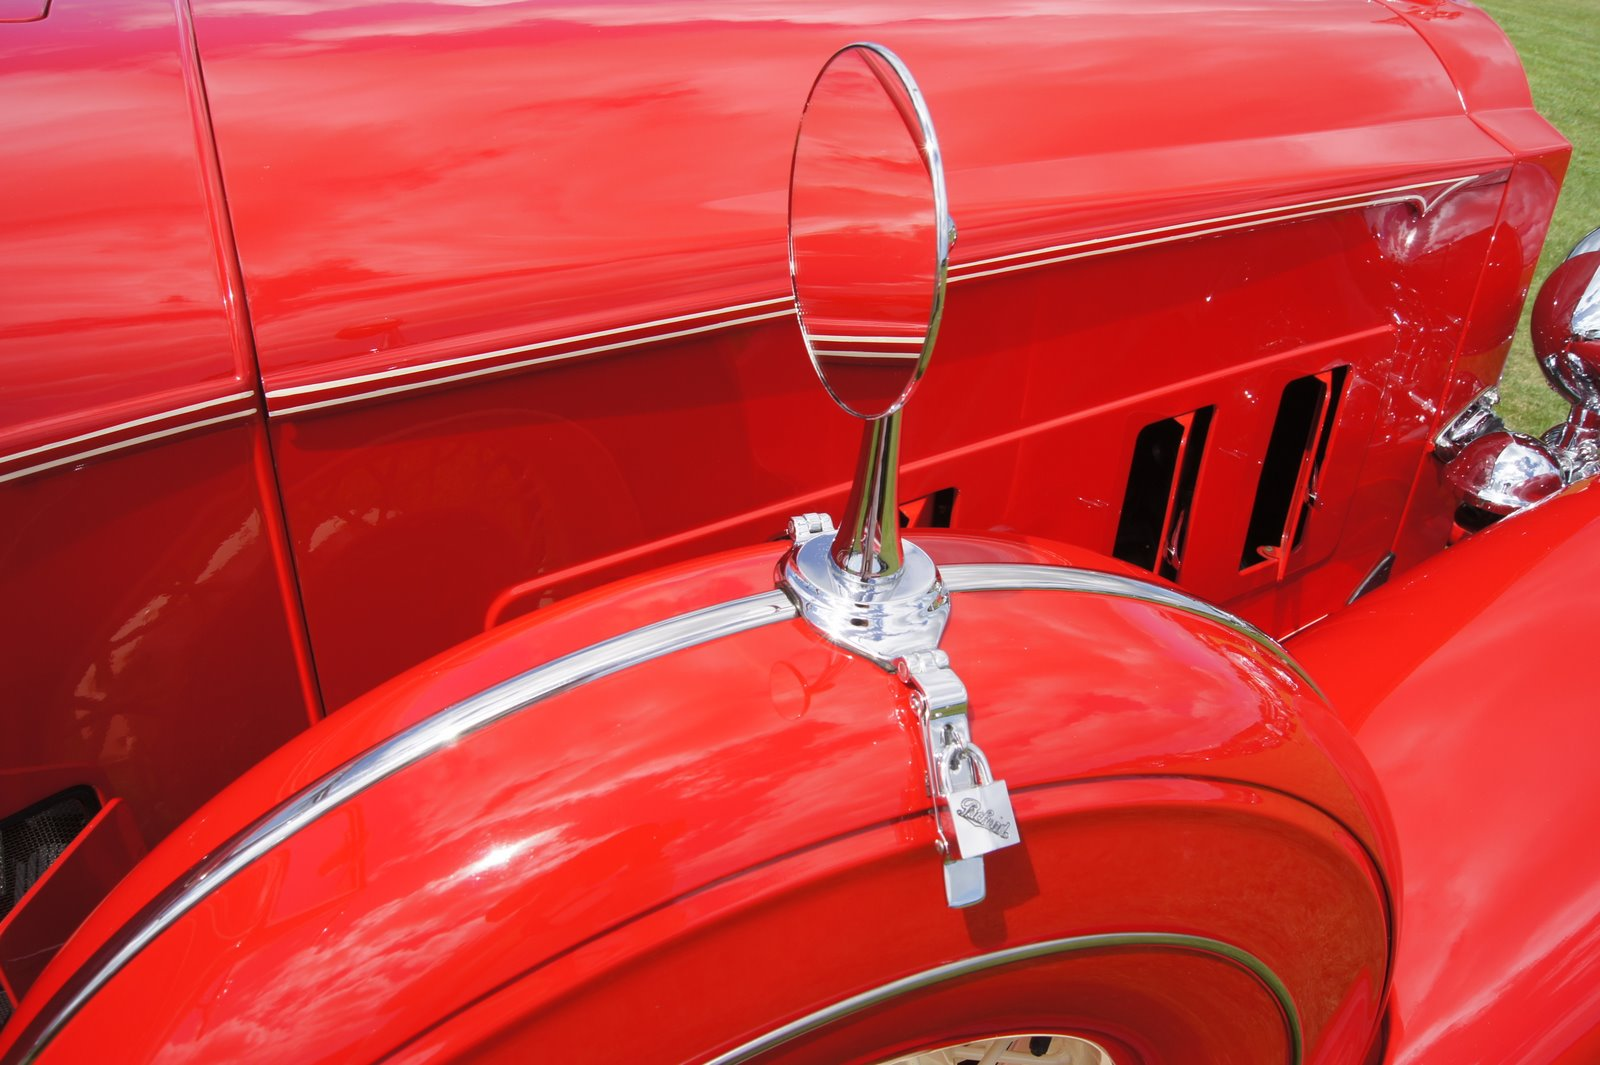 Magi and Sam: A rare one, 1934 Packard  Price when new US$3498